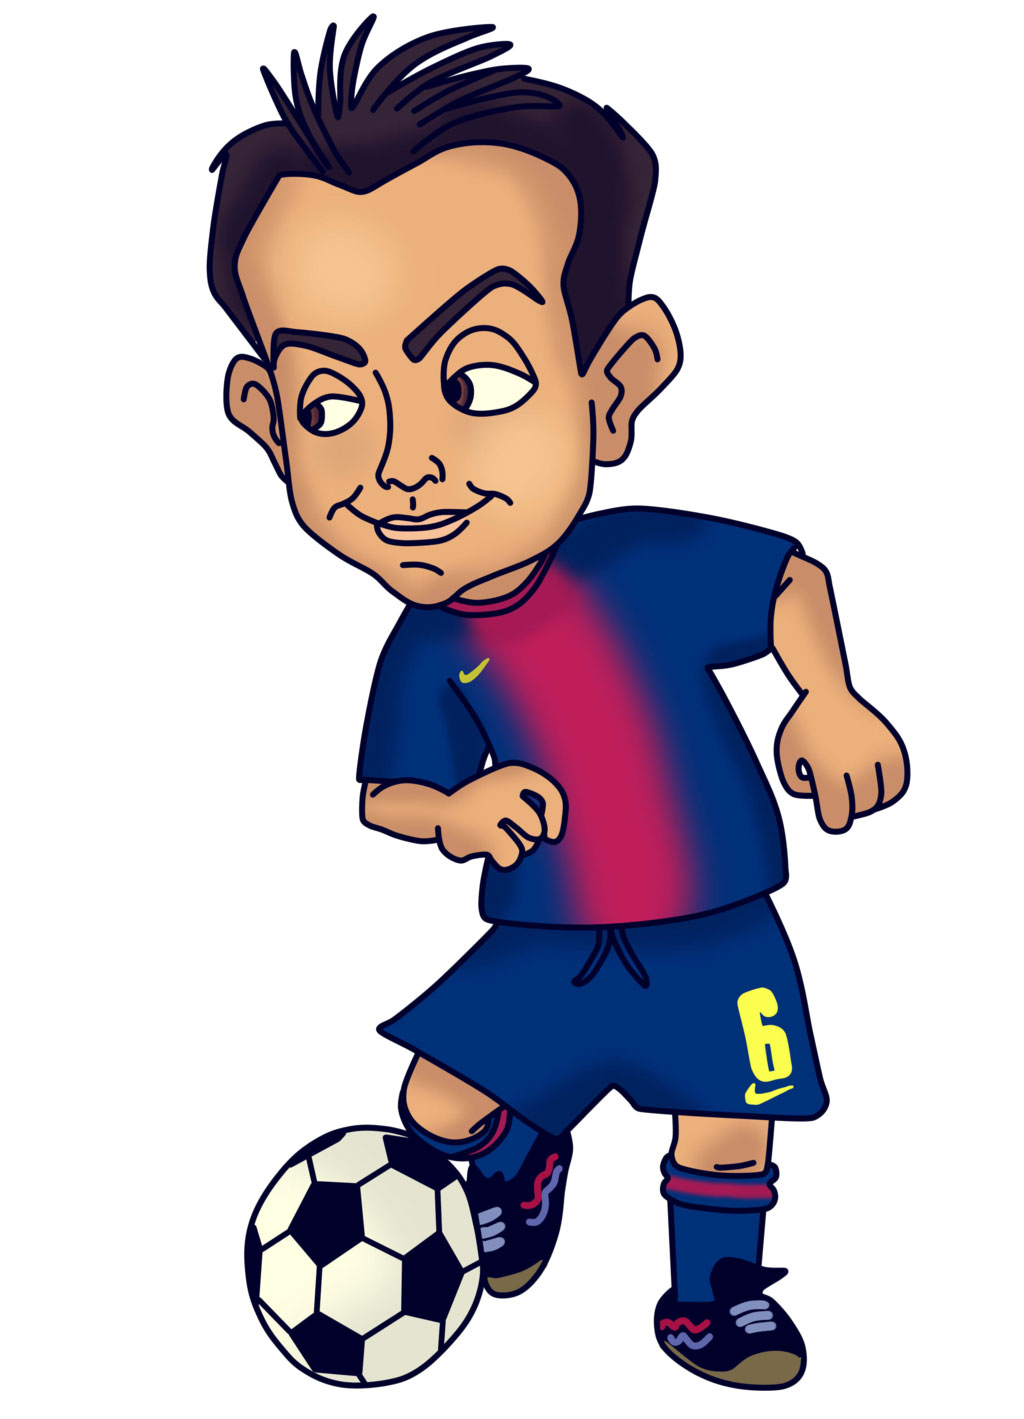 Football Cartoon Clipart - Clipart Kid